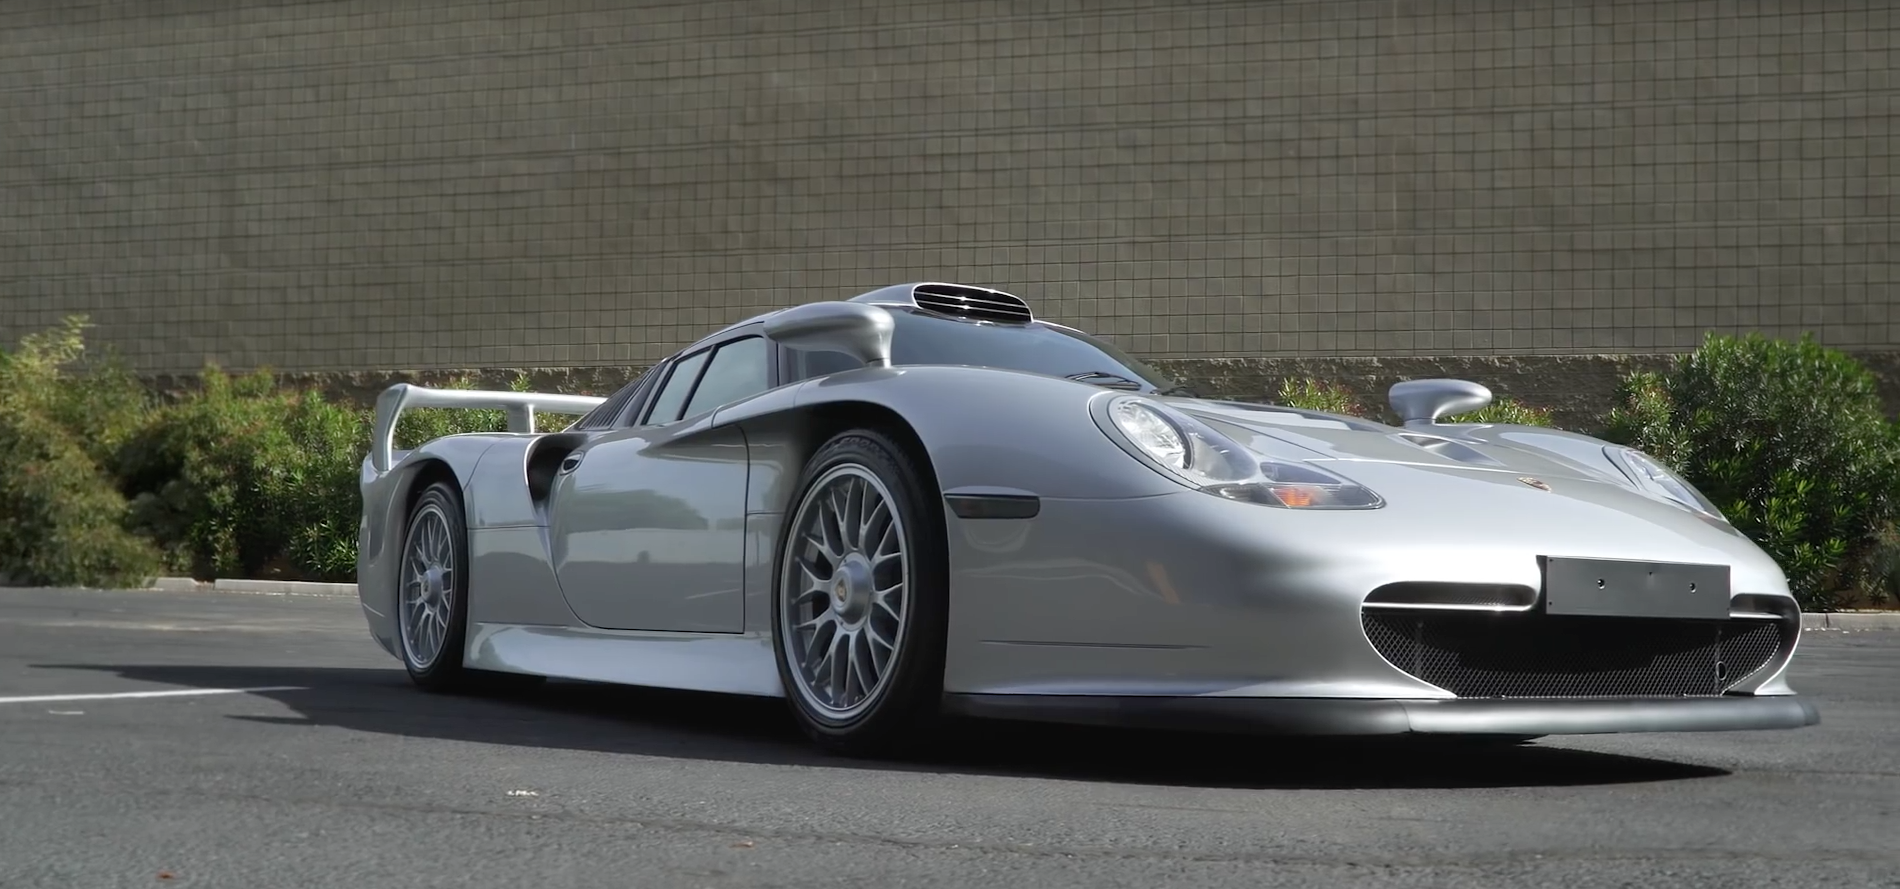 Rare Street-Legal Porsche Racer Sells For More Than £4m